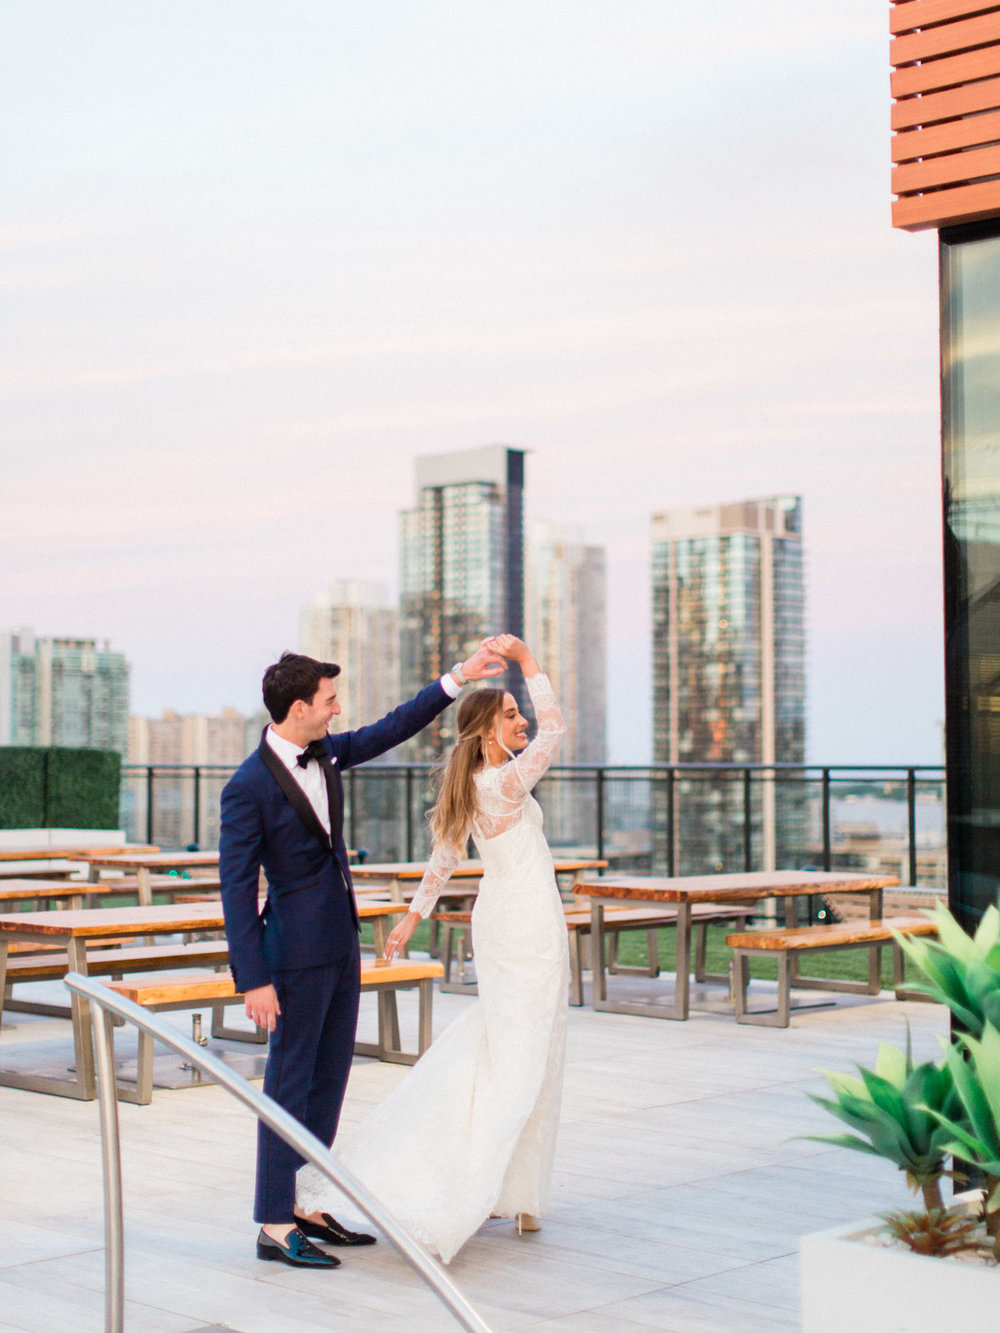 toronto-wedding-photographer-fine-art-documentary-classy-stylish-rooftop-lavelle-233.jpg